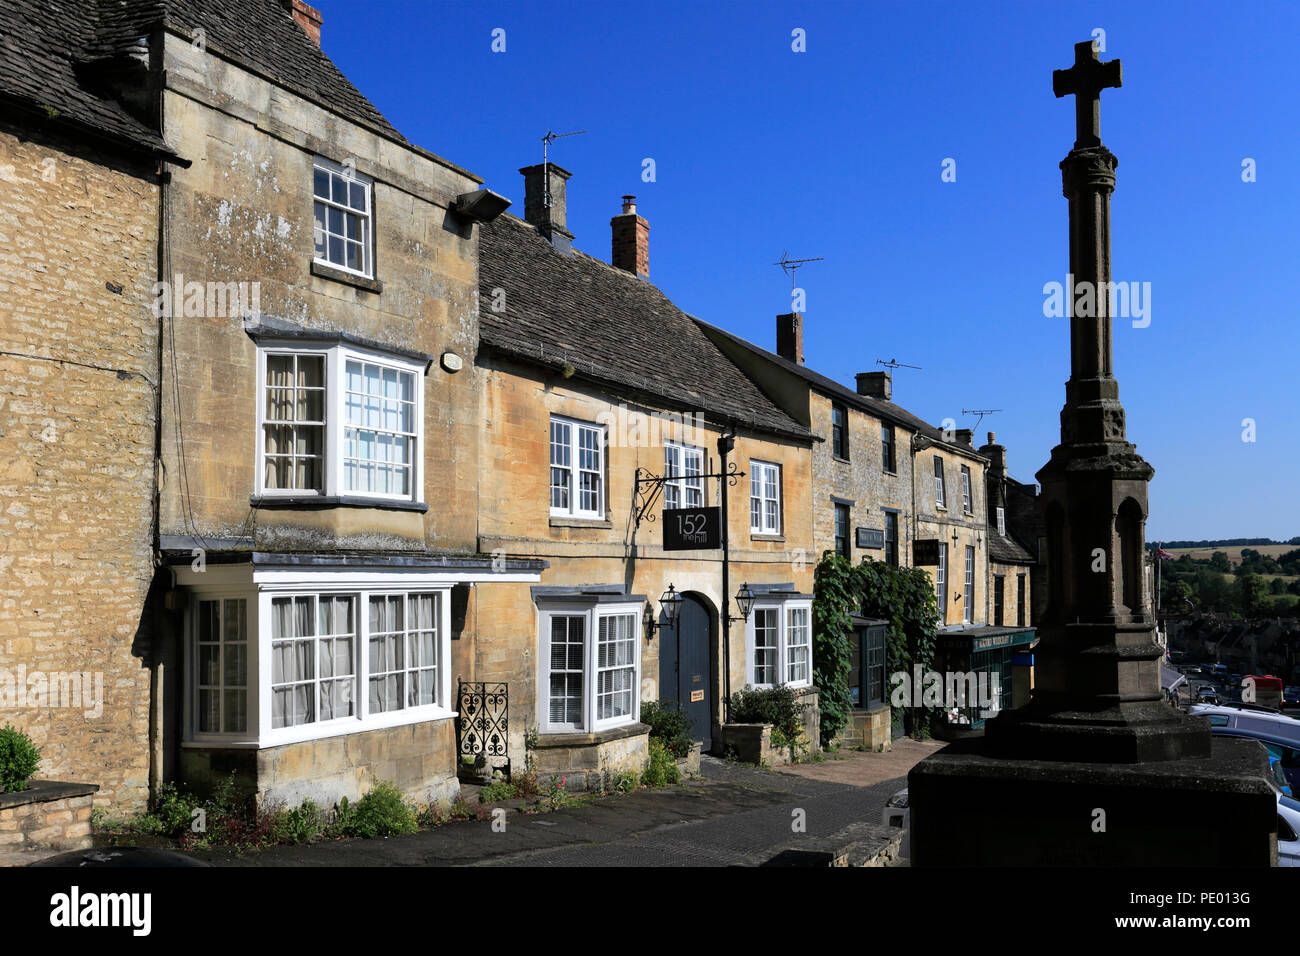 Street Scene at the Georgian Town of Burford, Oxfordshire Cotswolds, England, UK - Stock Image